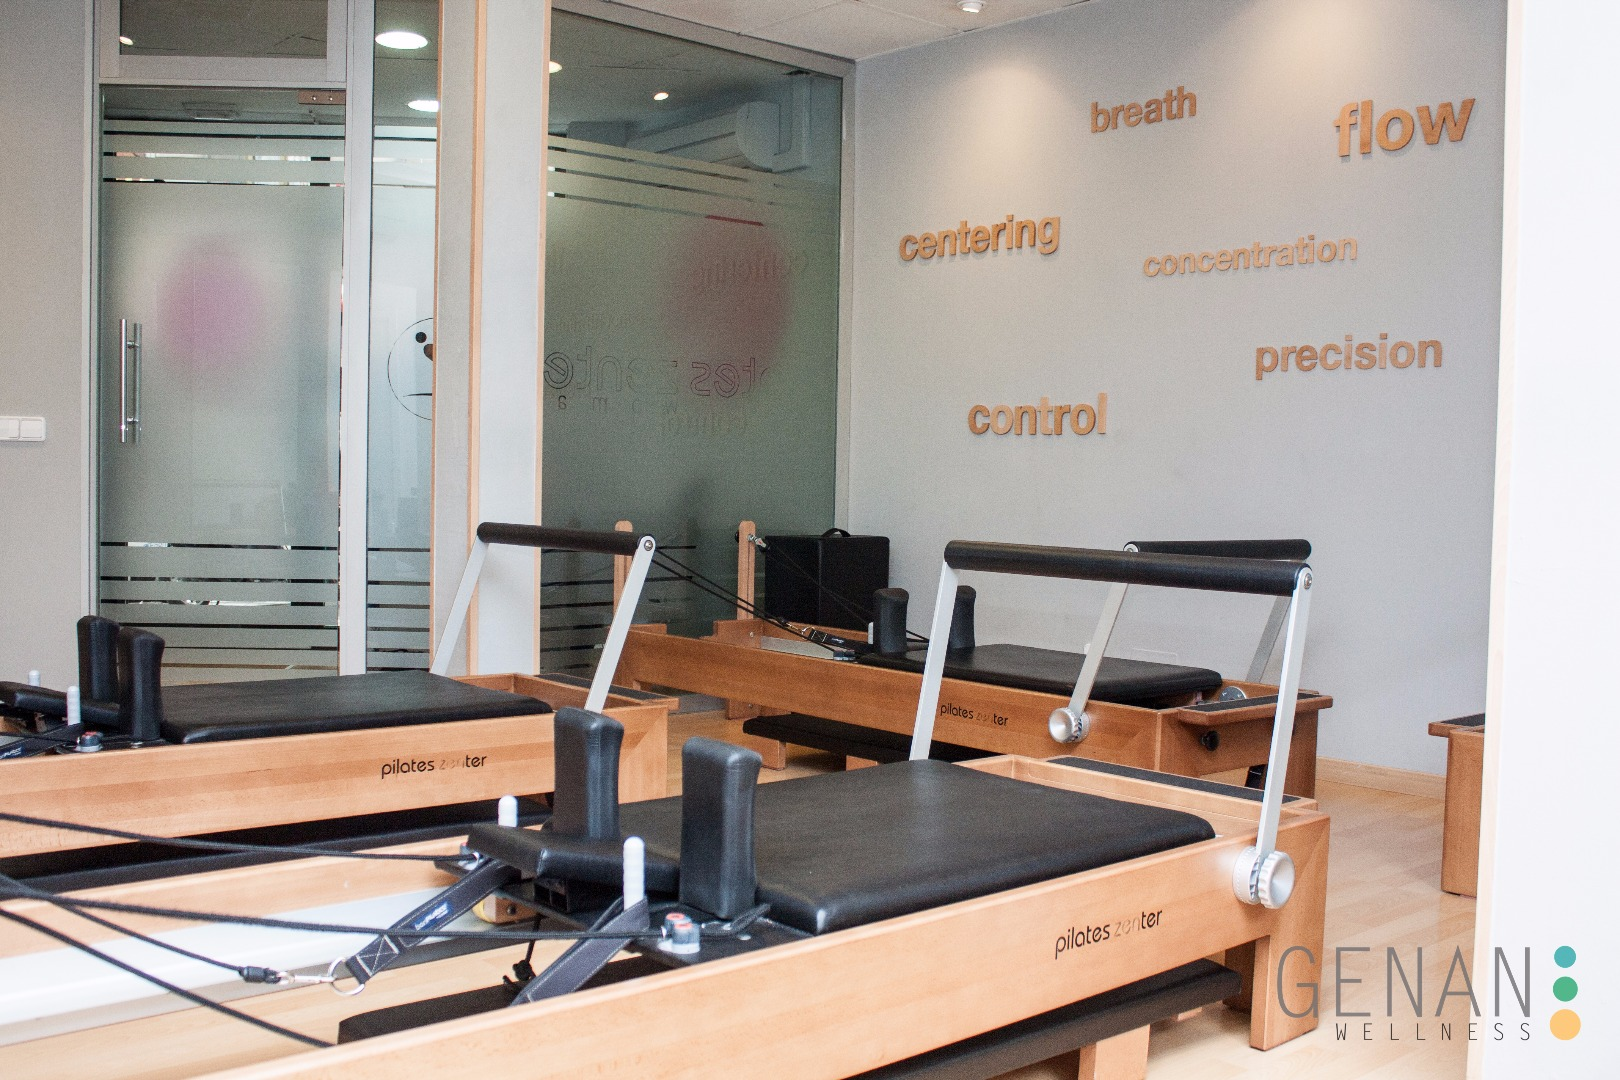 Picture 3 Deals for Gym Genan Wellness Barcelona